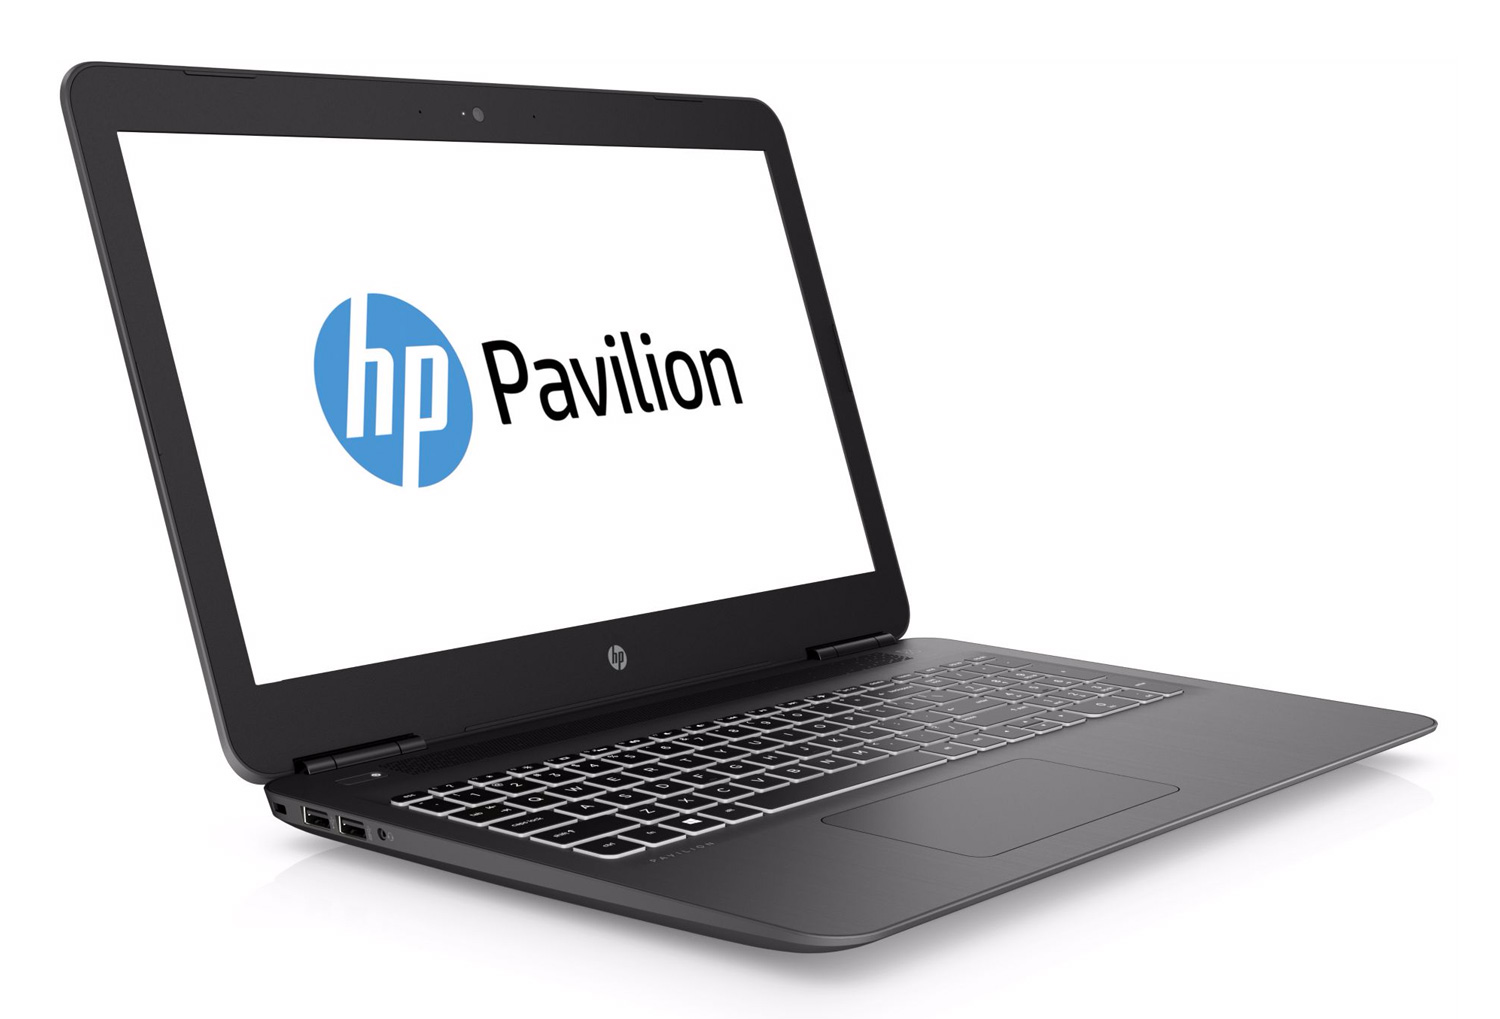 hp pavilion 15 bc301nf achetez au meilleur prix. Black Bedroom Furniture Sets. Home Design Ideas